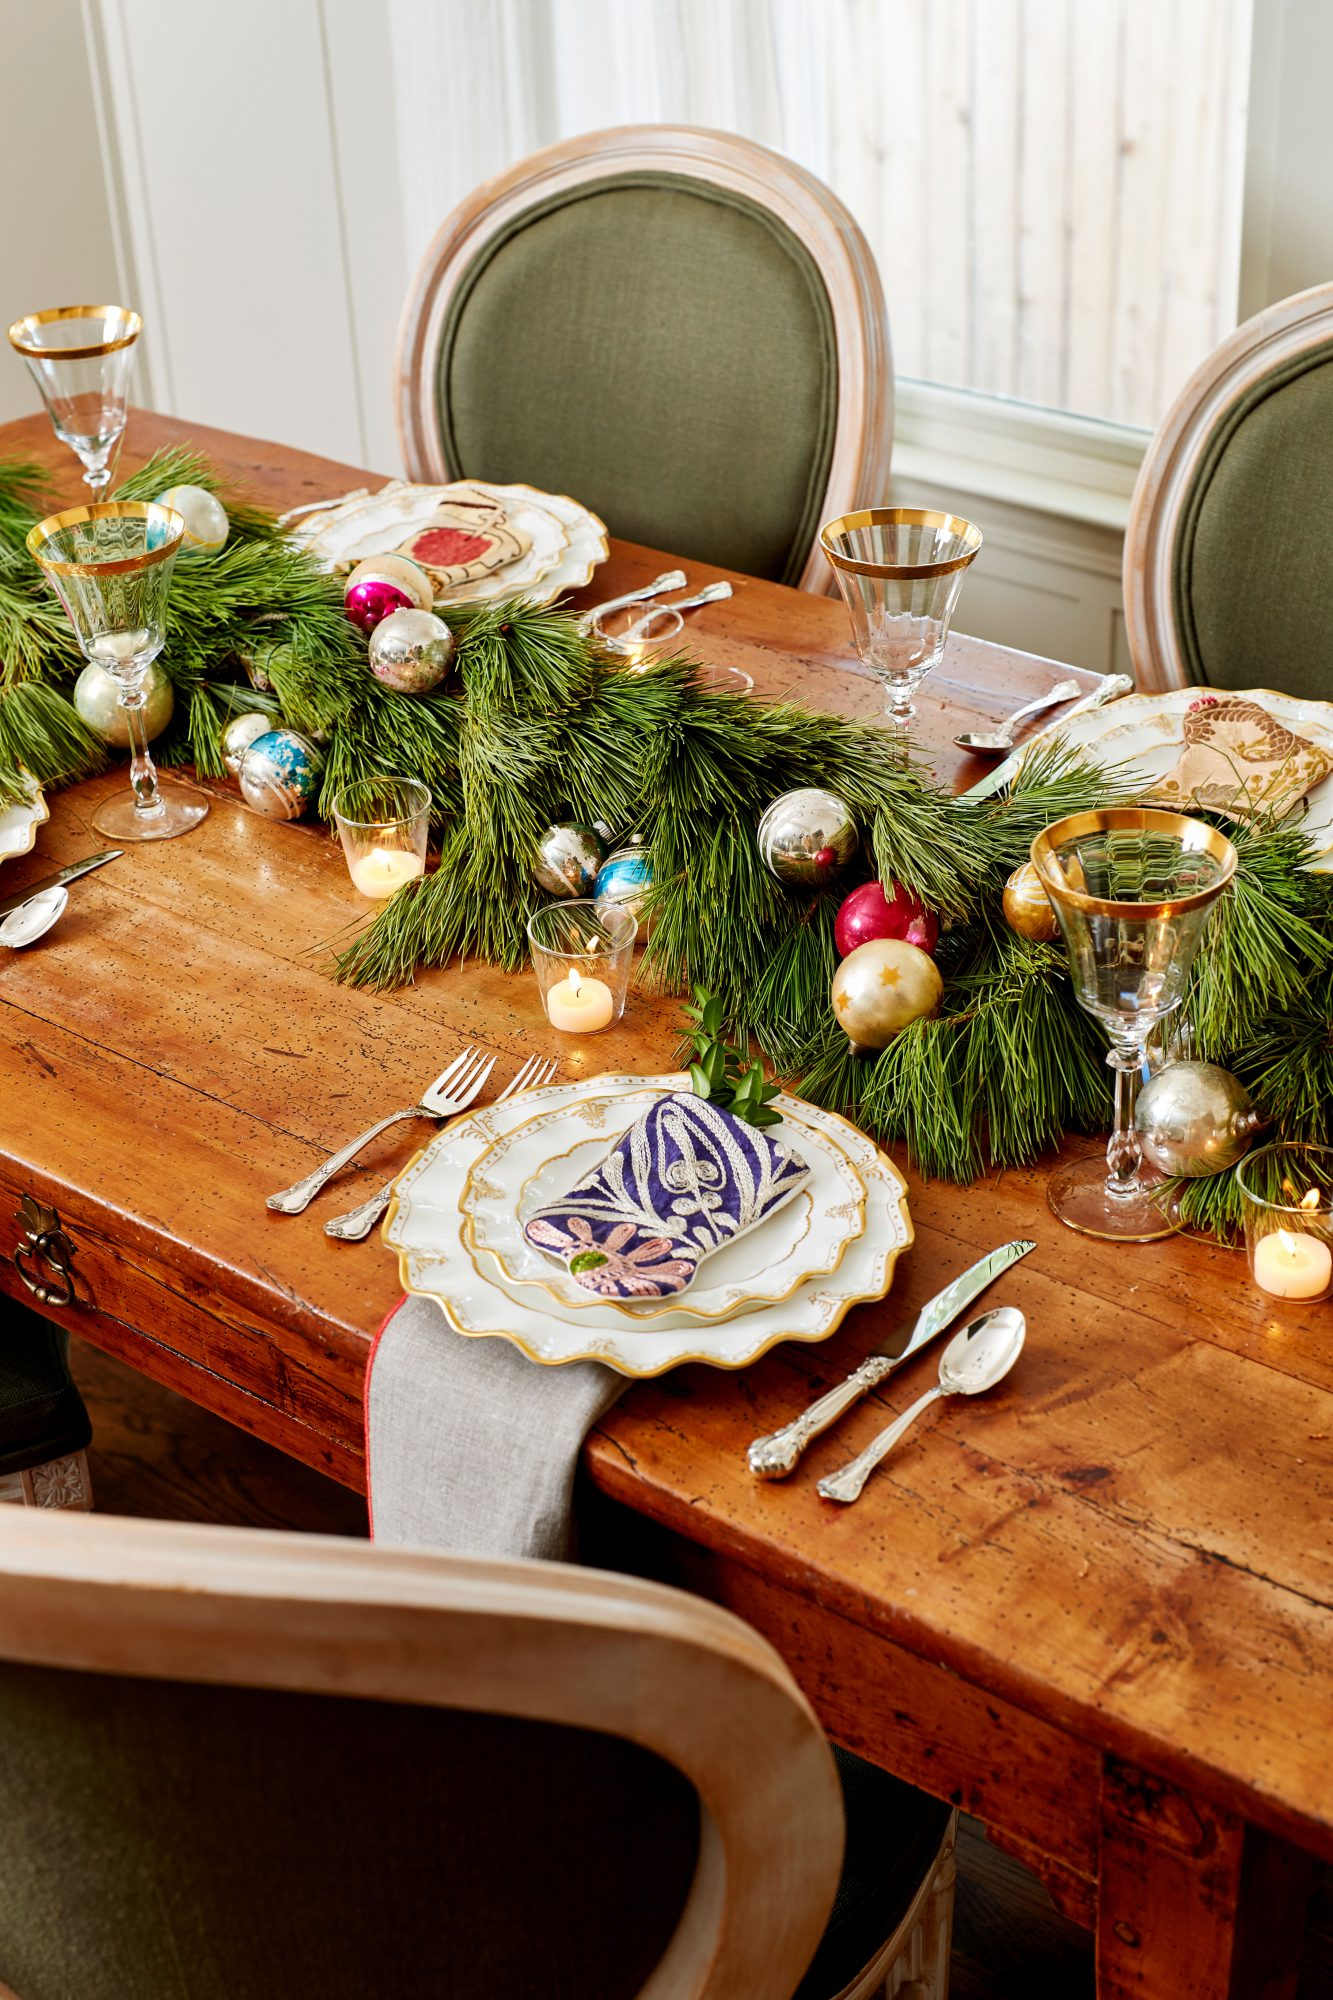 Pine Garland and Ornaments on Dining Table